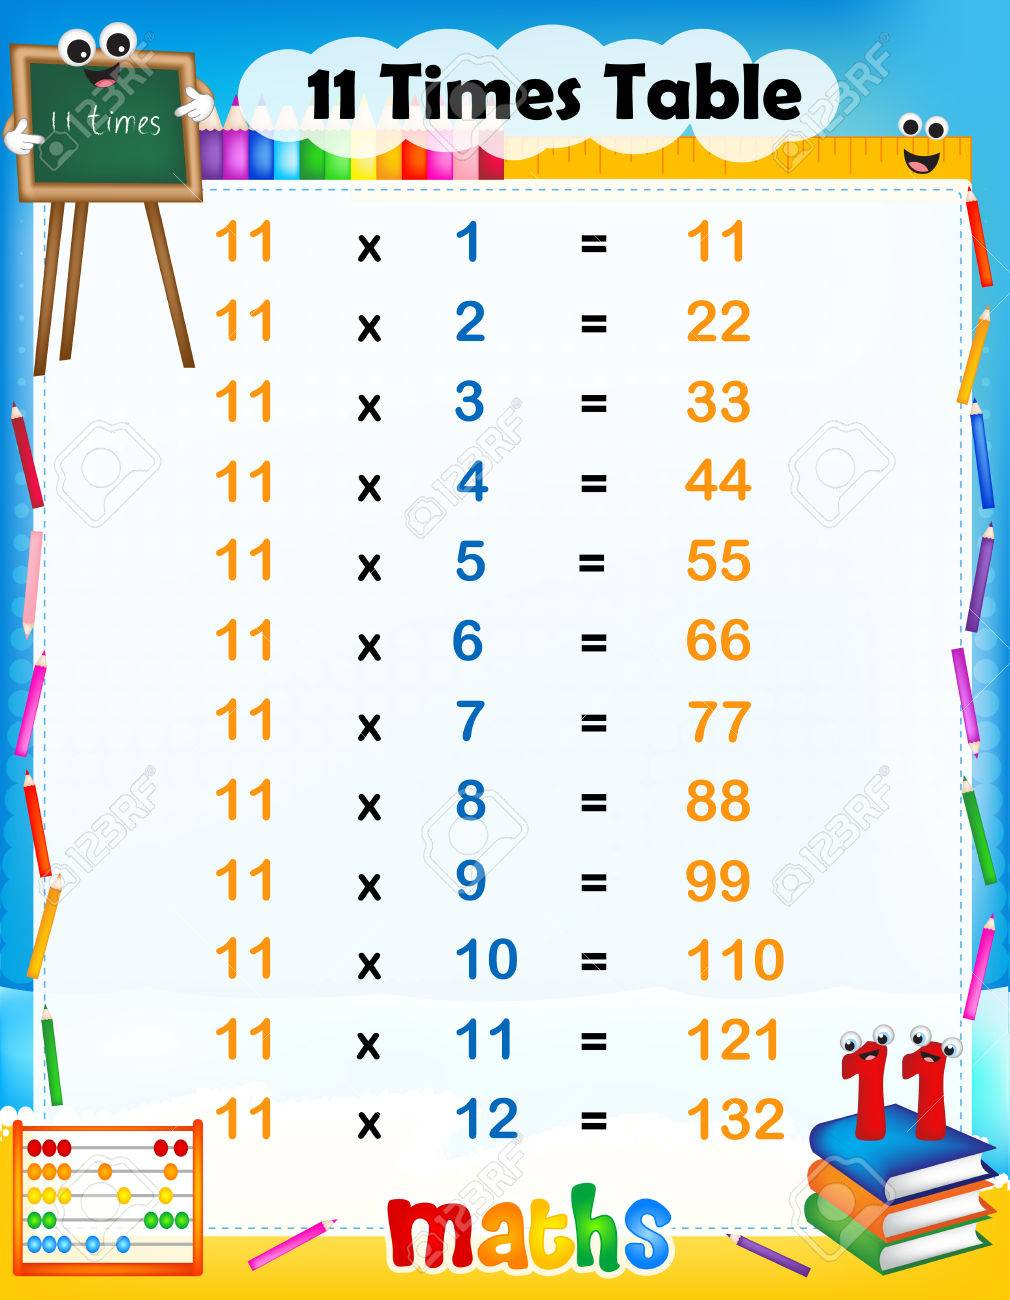 worksheet 11 Times Table illustration of a cute and colorful mathematical times table with answers 11 stock